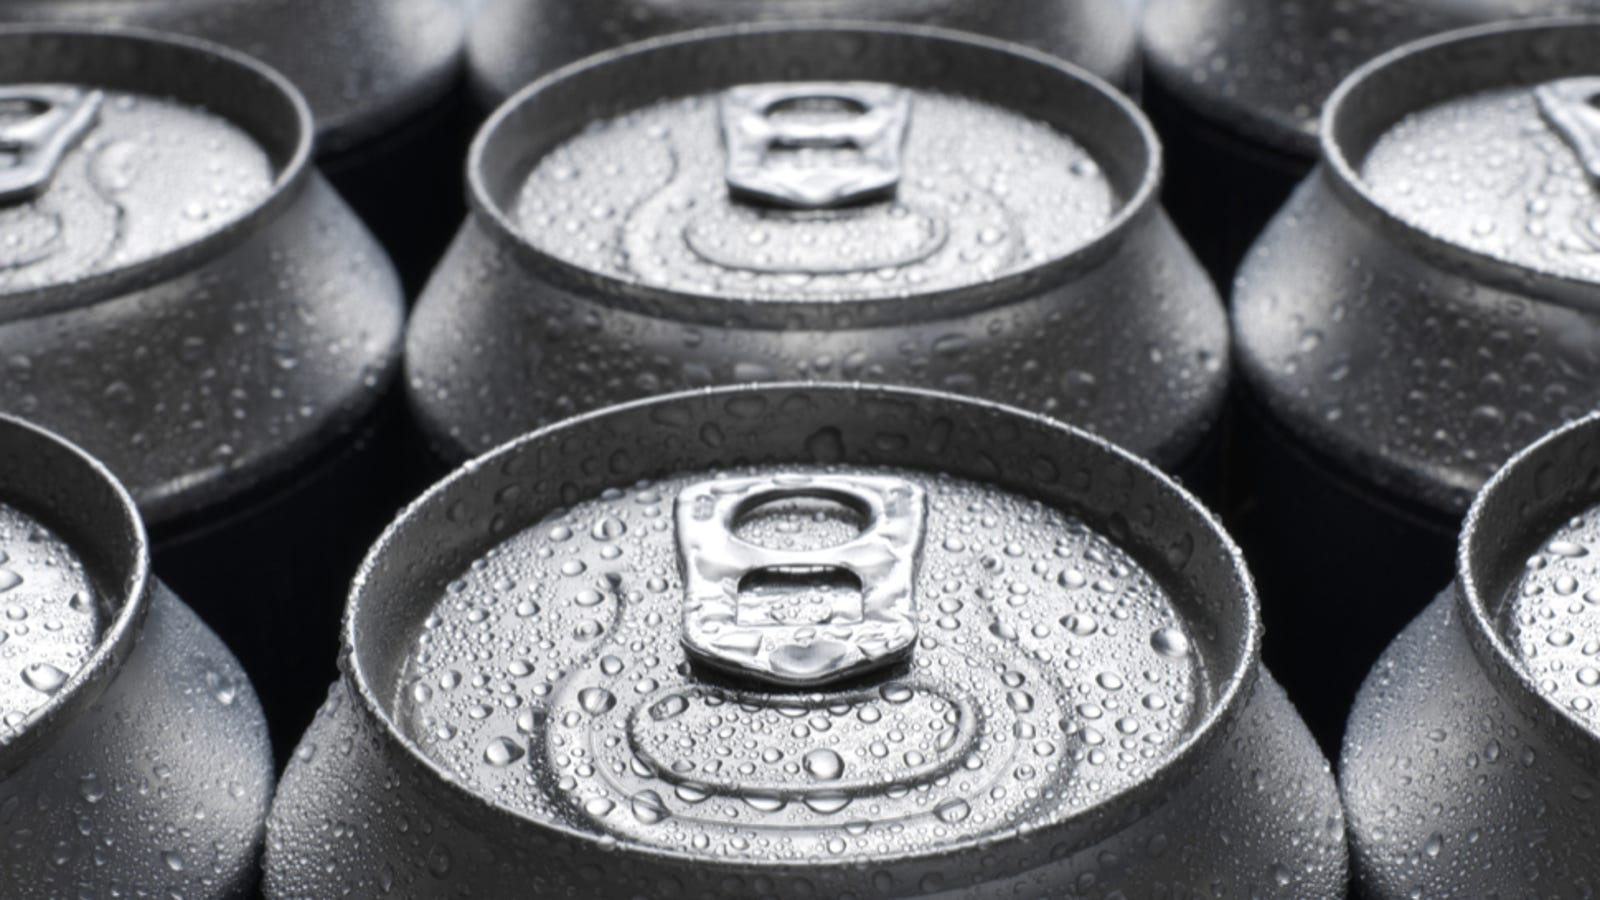 That condensation on your beer can might not be a good sign